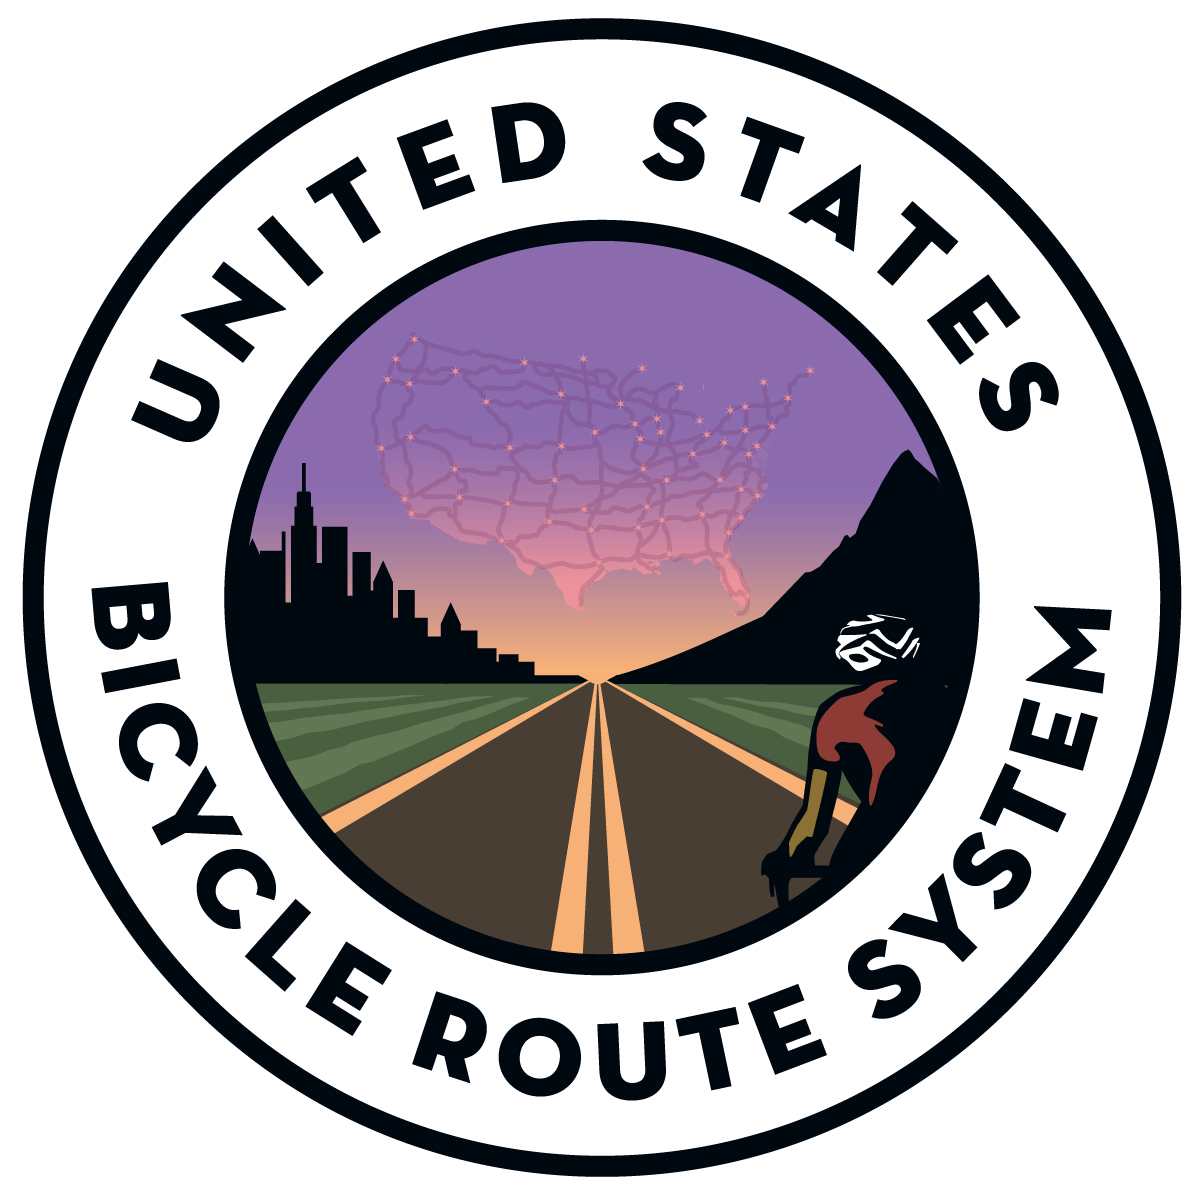 U.S. Bicycle Route System